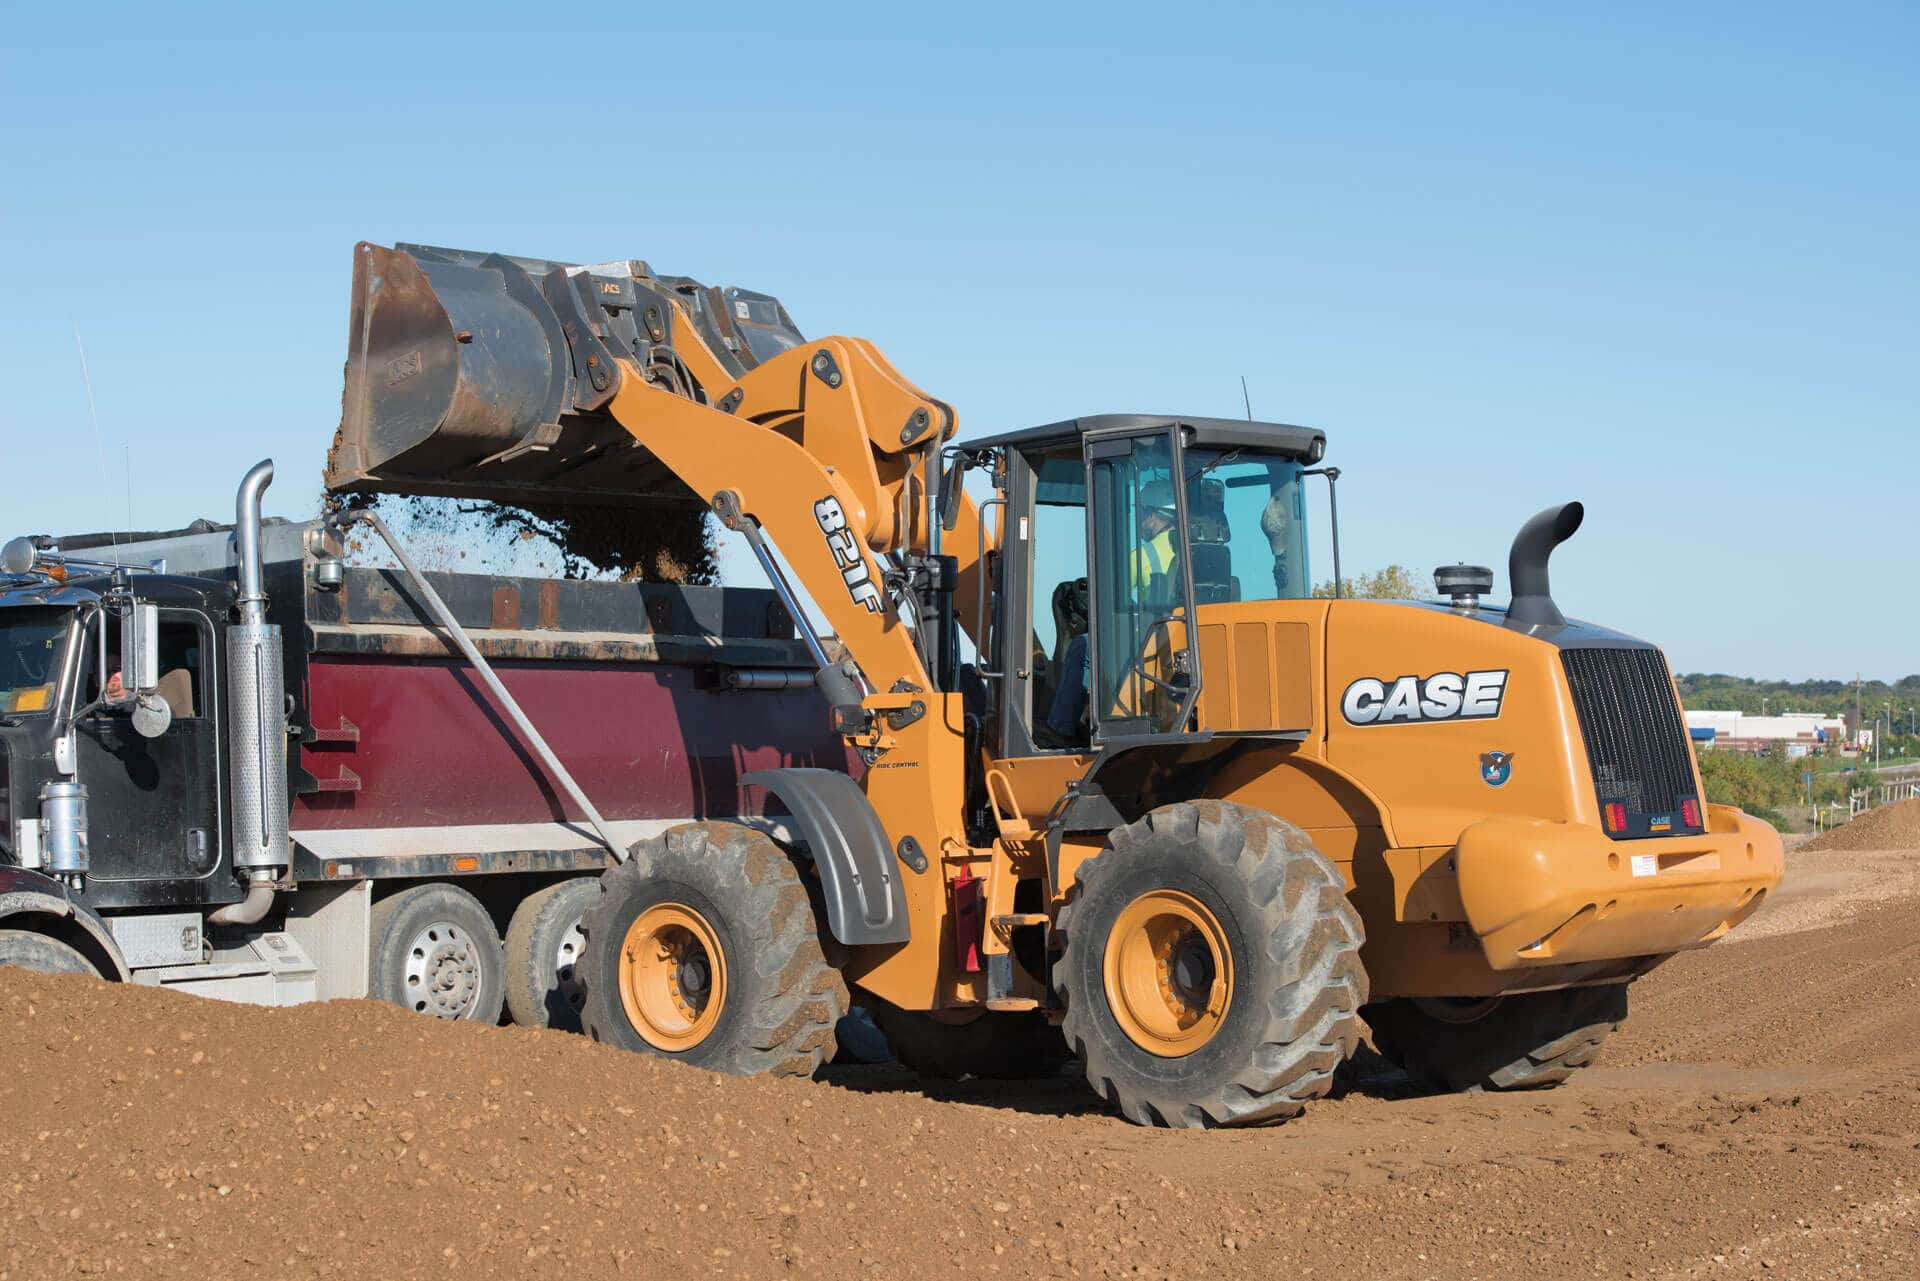 821F_RJP9733_T4F?Width=1024&Height=576 case 821f wheel loader case construction equipment  at bayanpartner.co